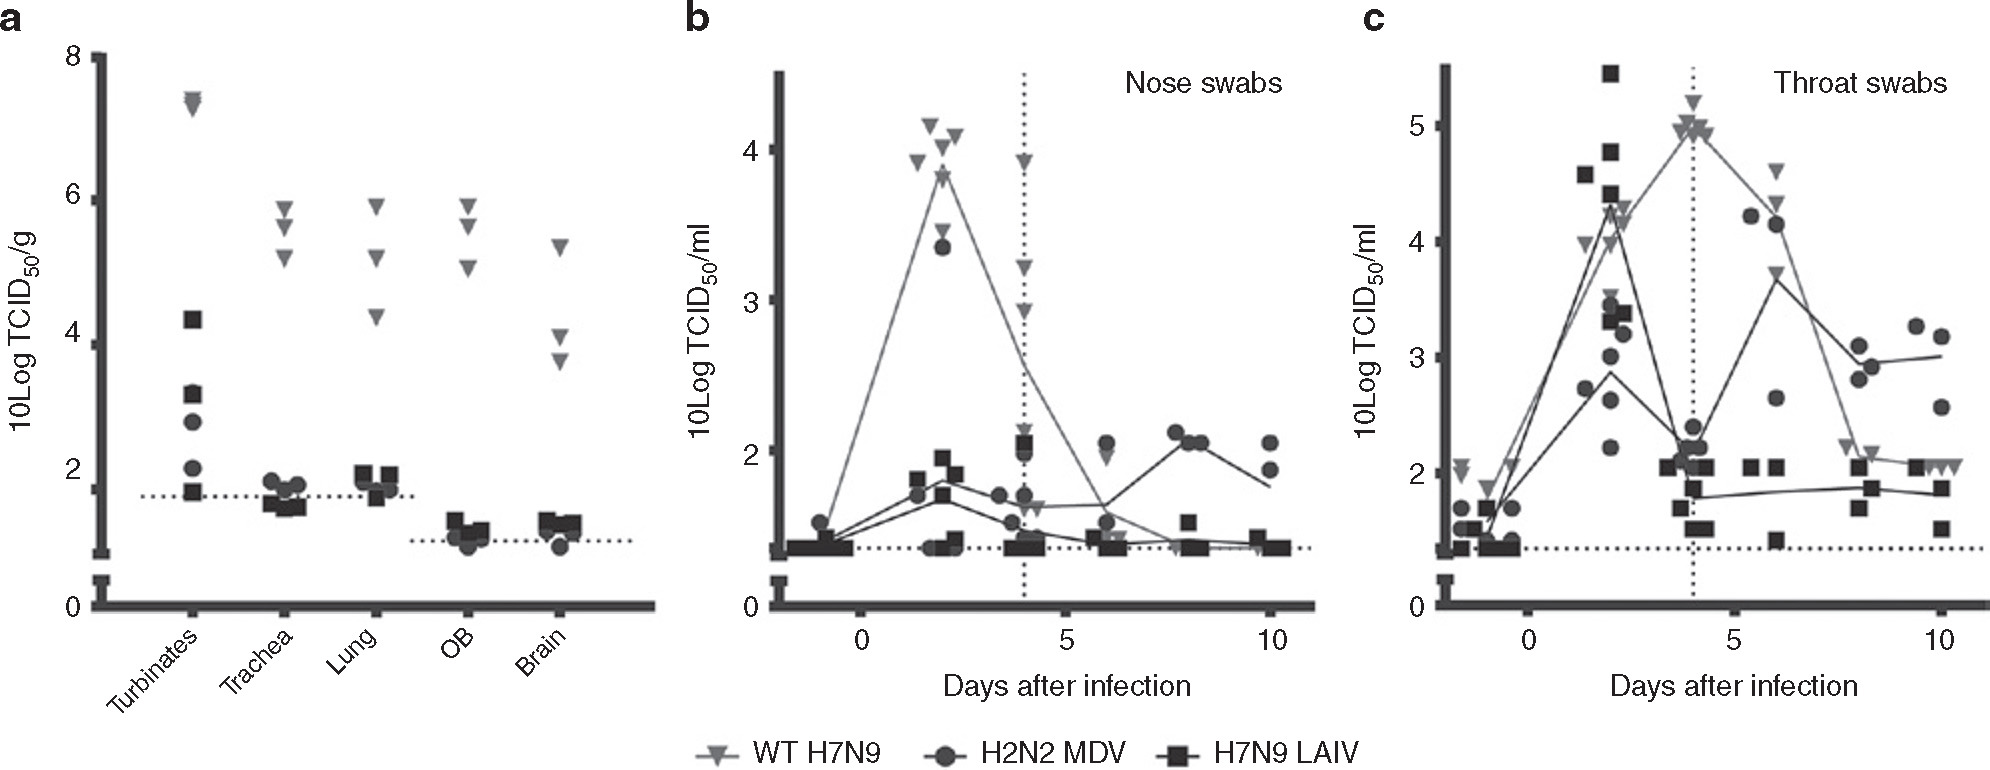 H7n9 Live Attenuated Influenza Vaccine Is Highly